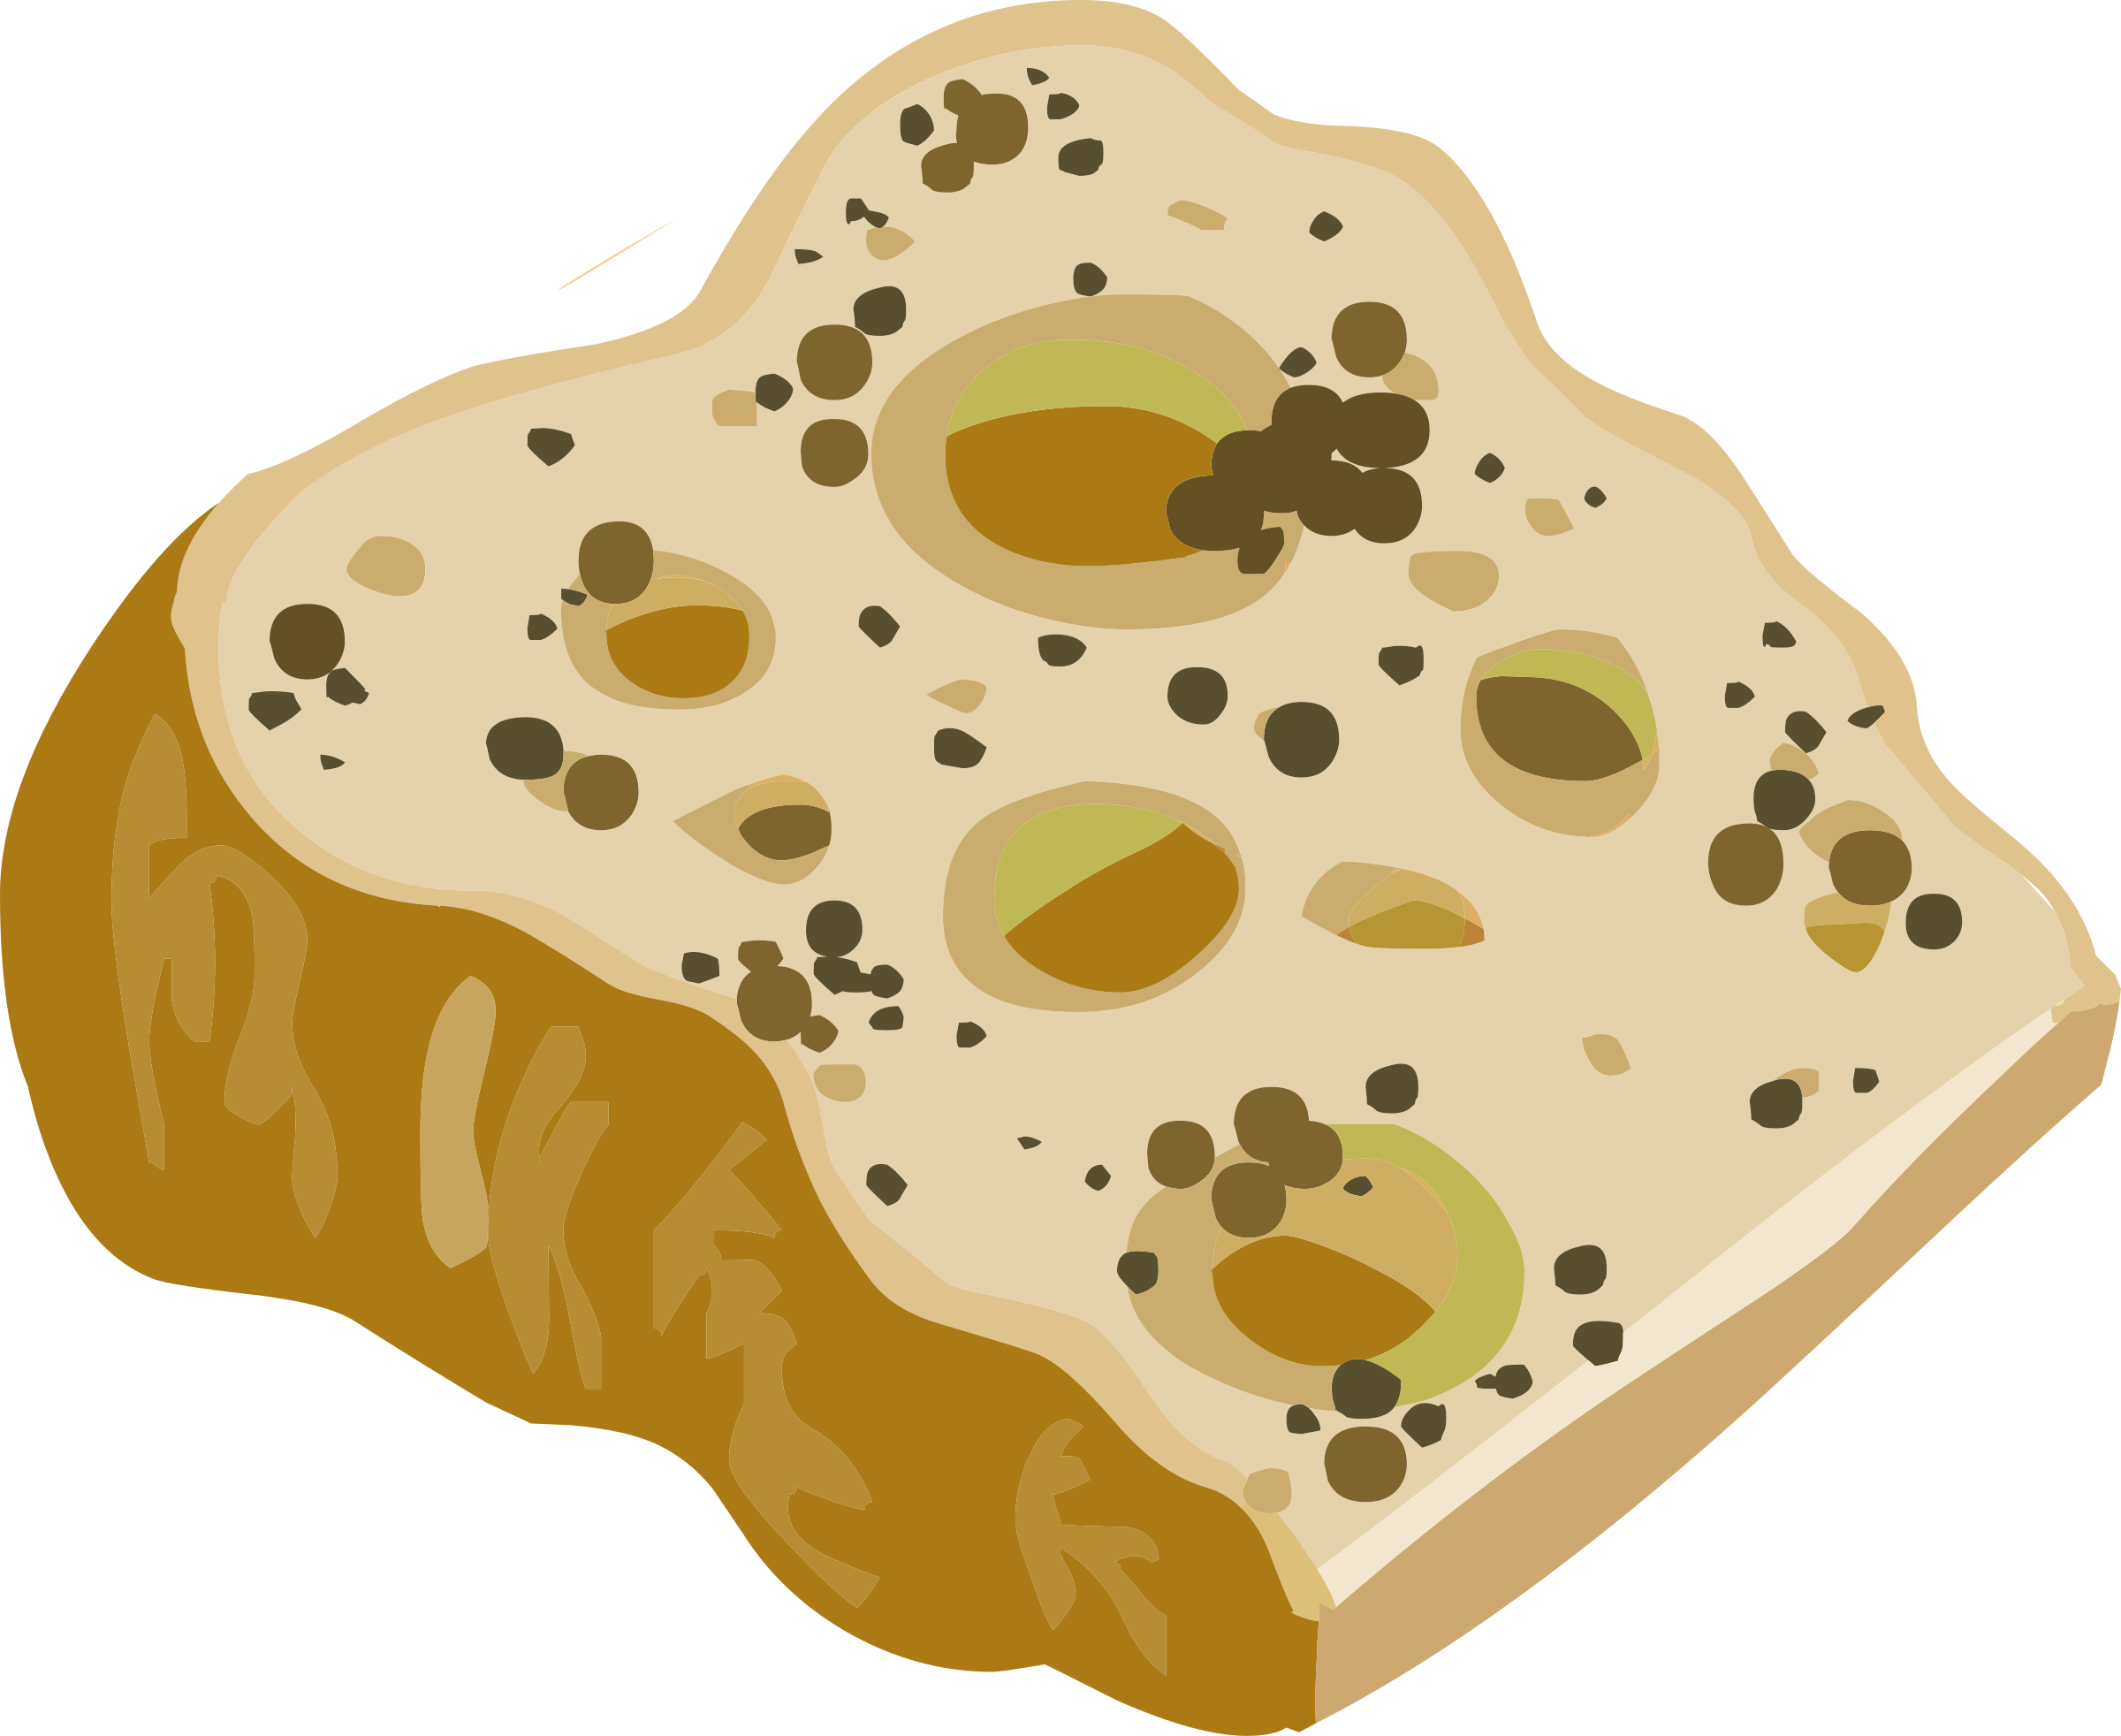 Food very icons png. Cheese clipart stinky